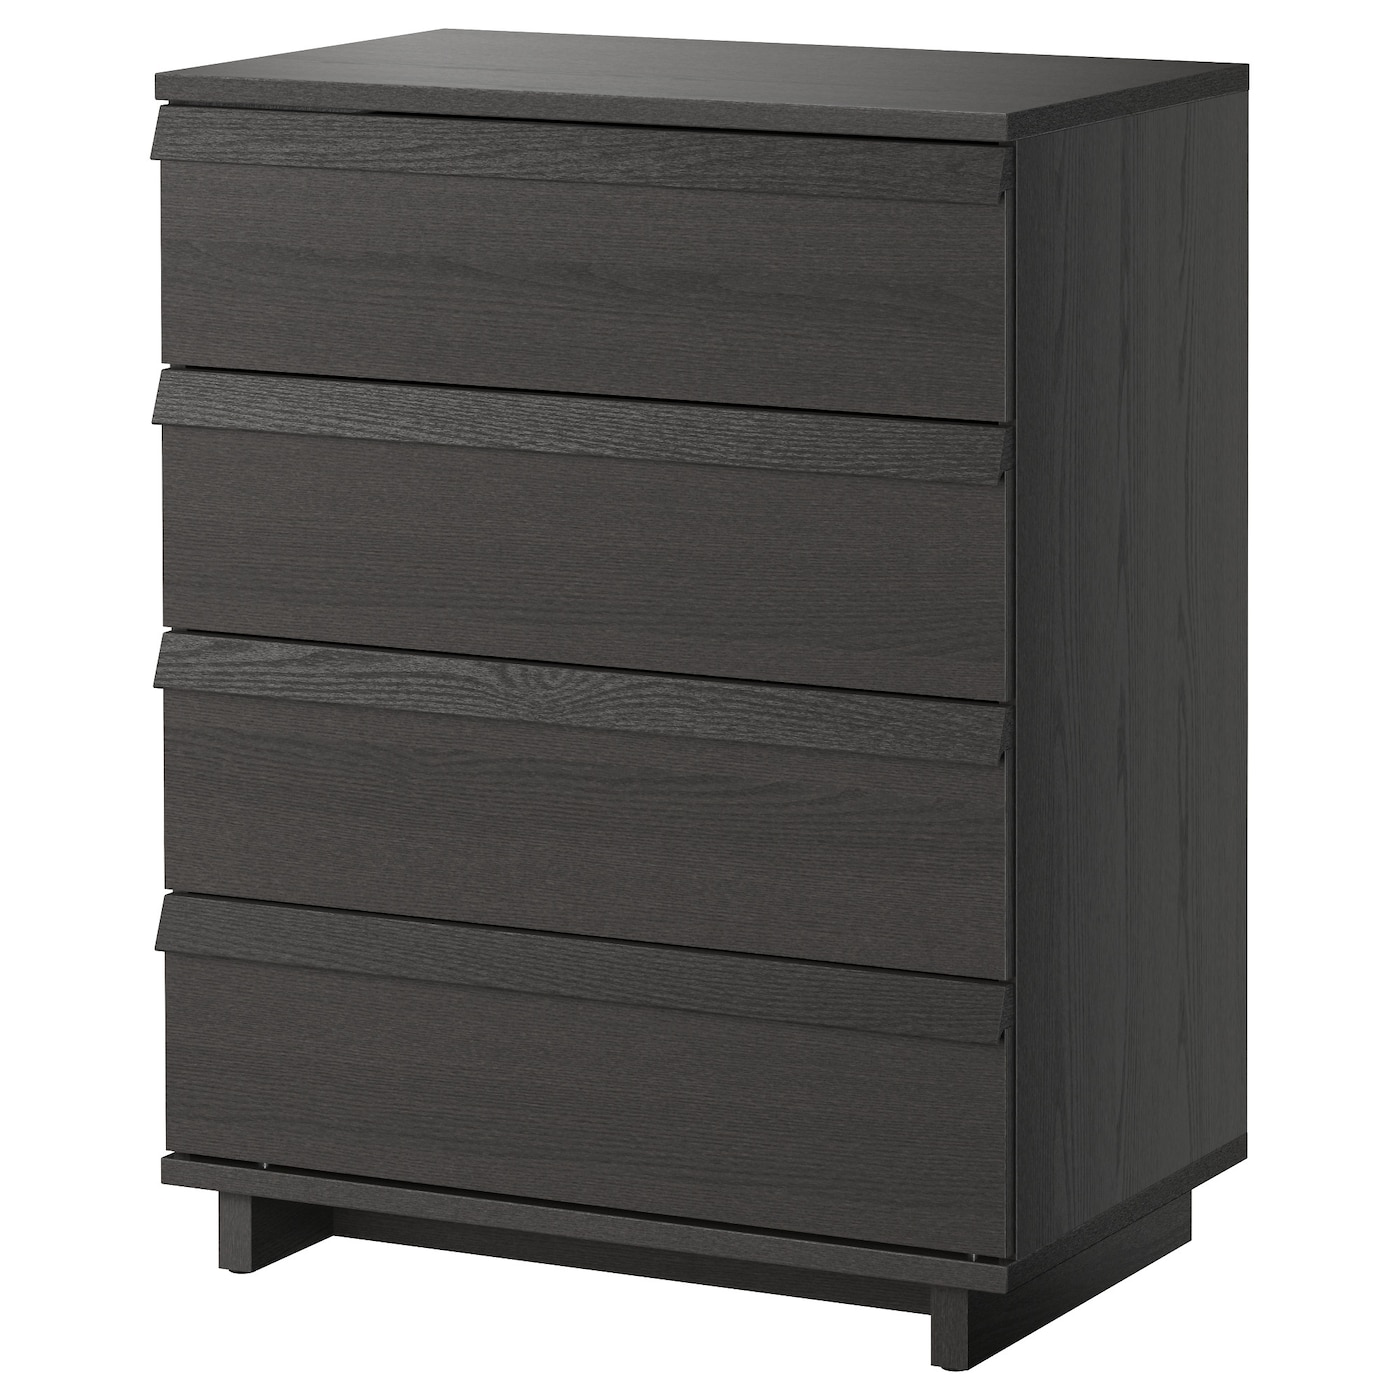 IKEA OPPLAND chest of 4 drawers